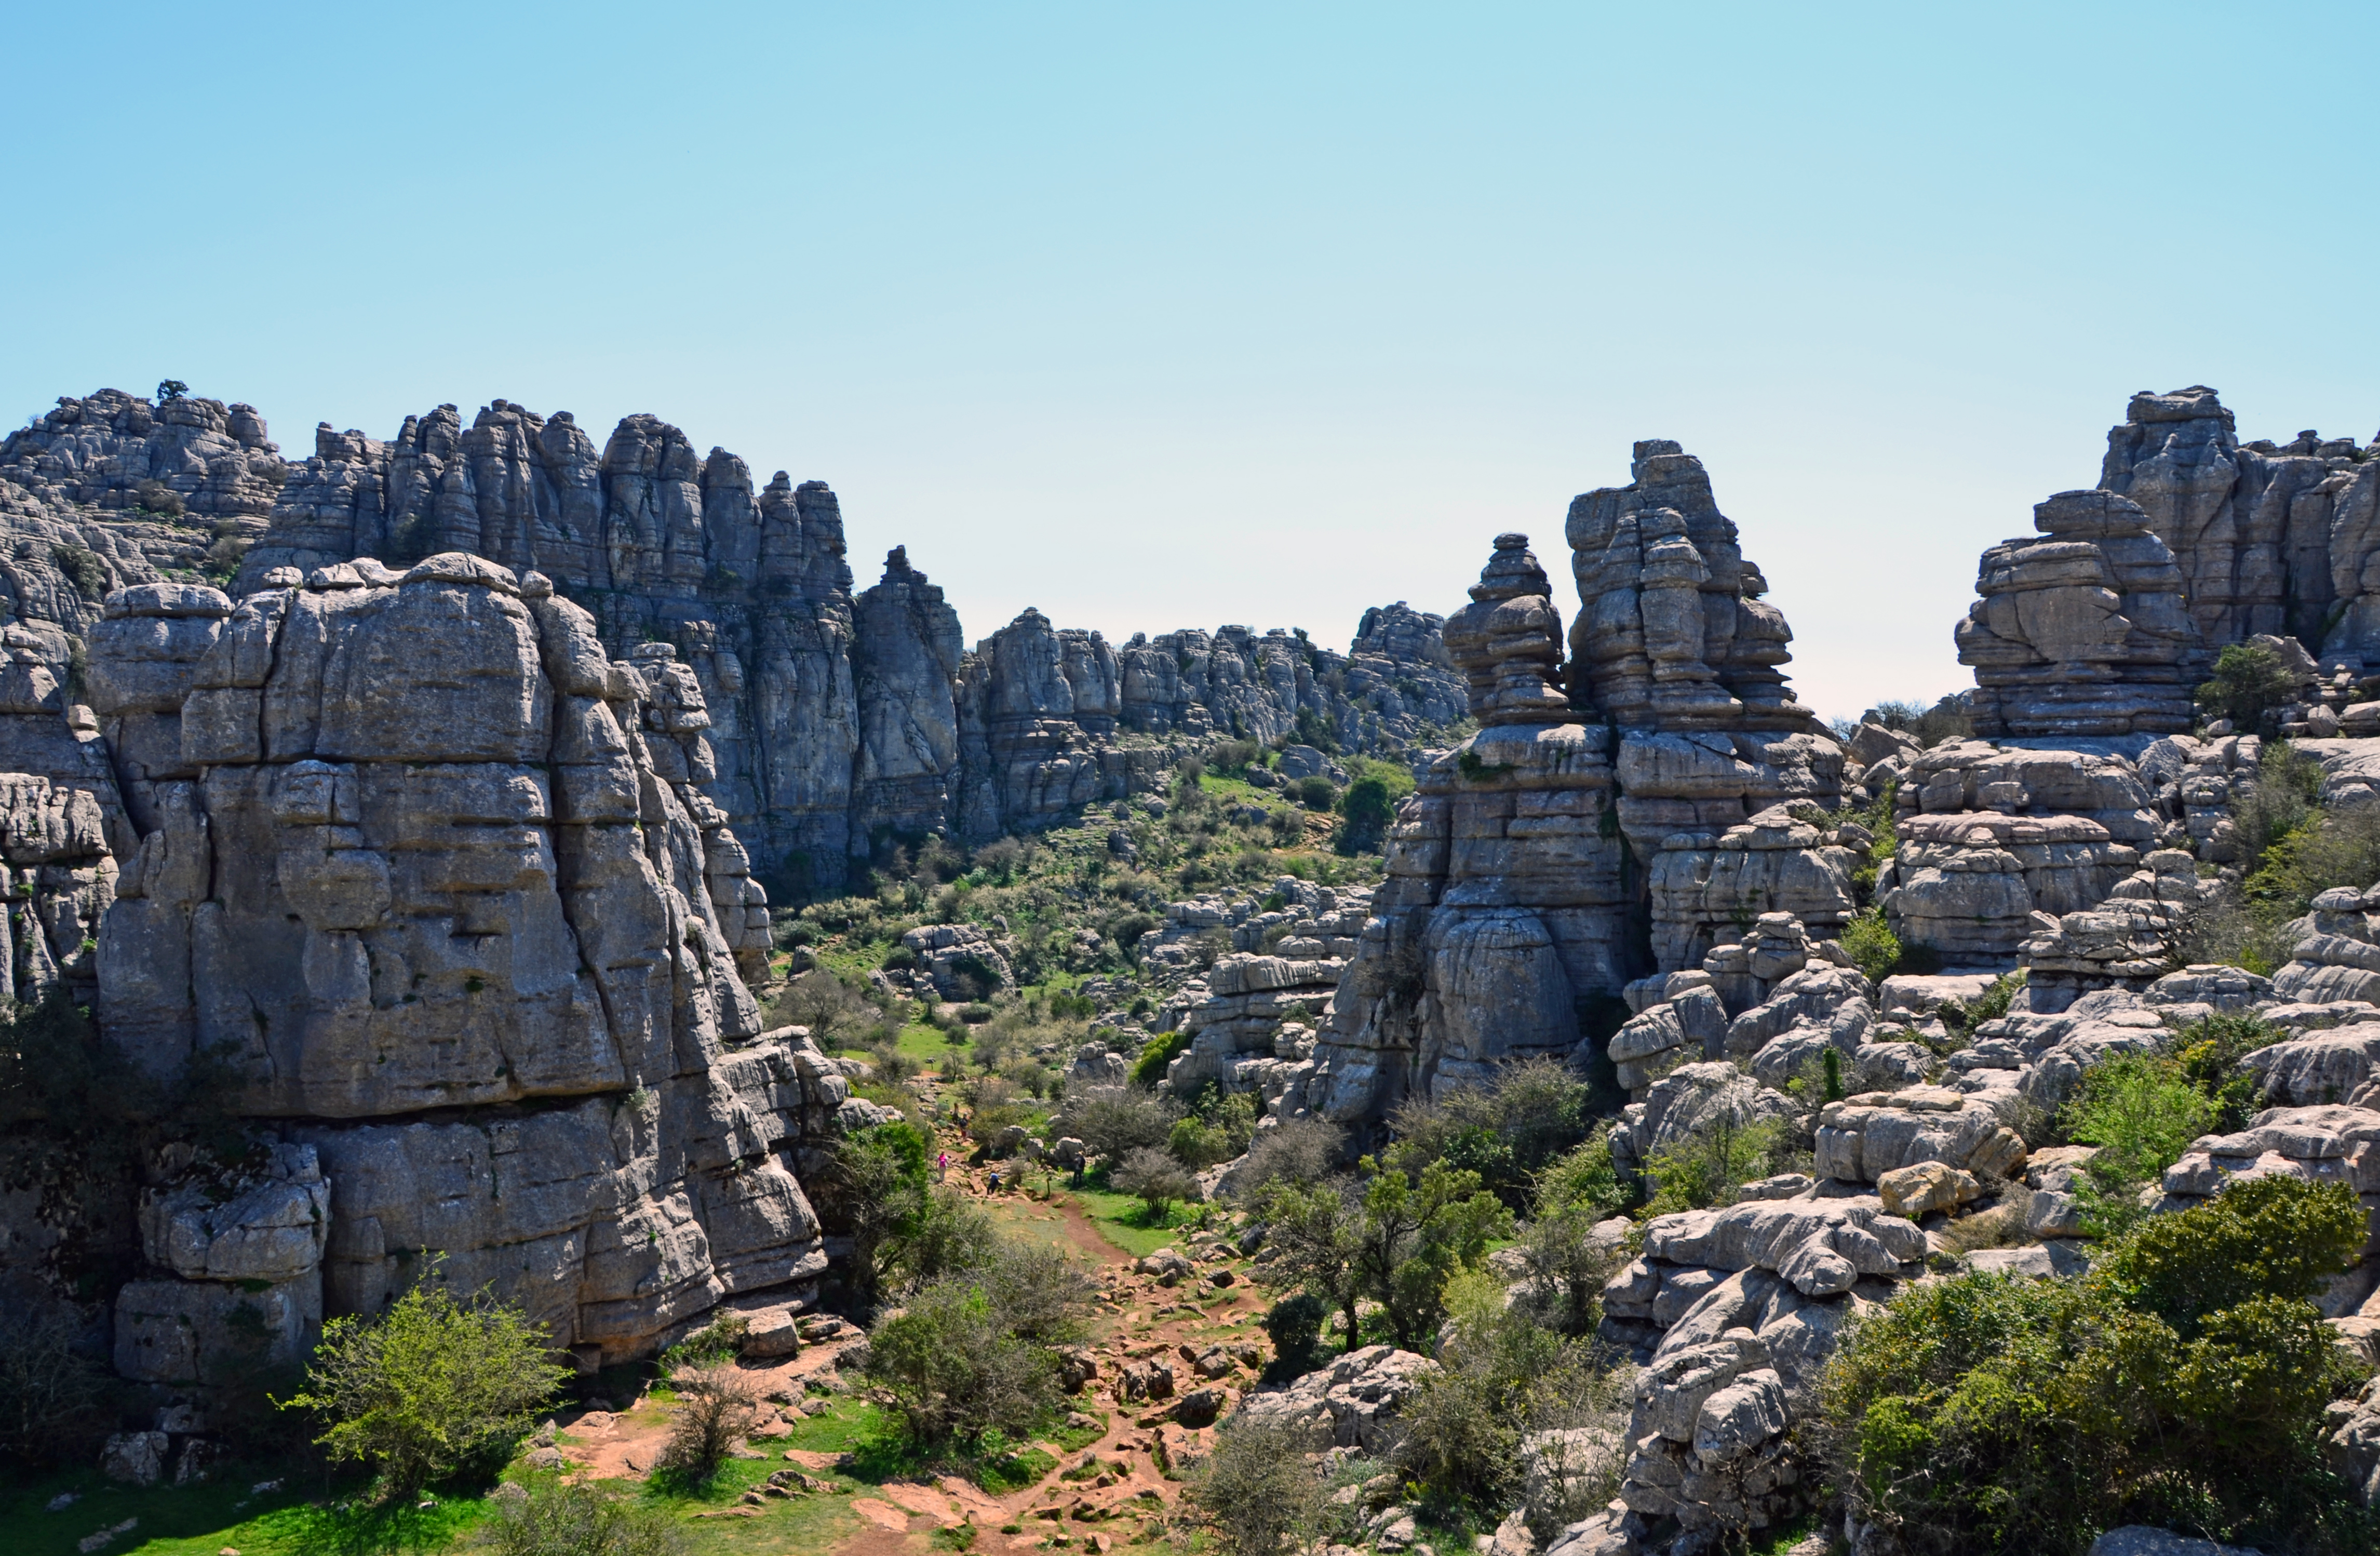 Torcal of Antequera